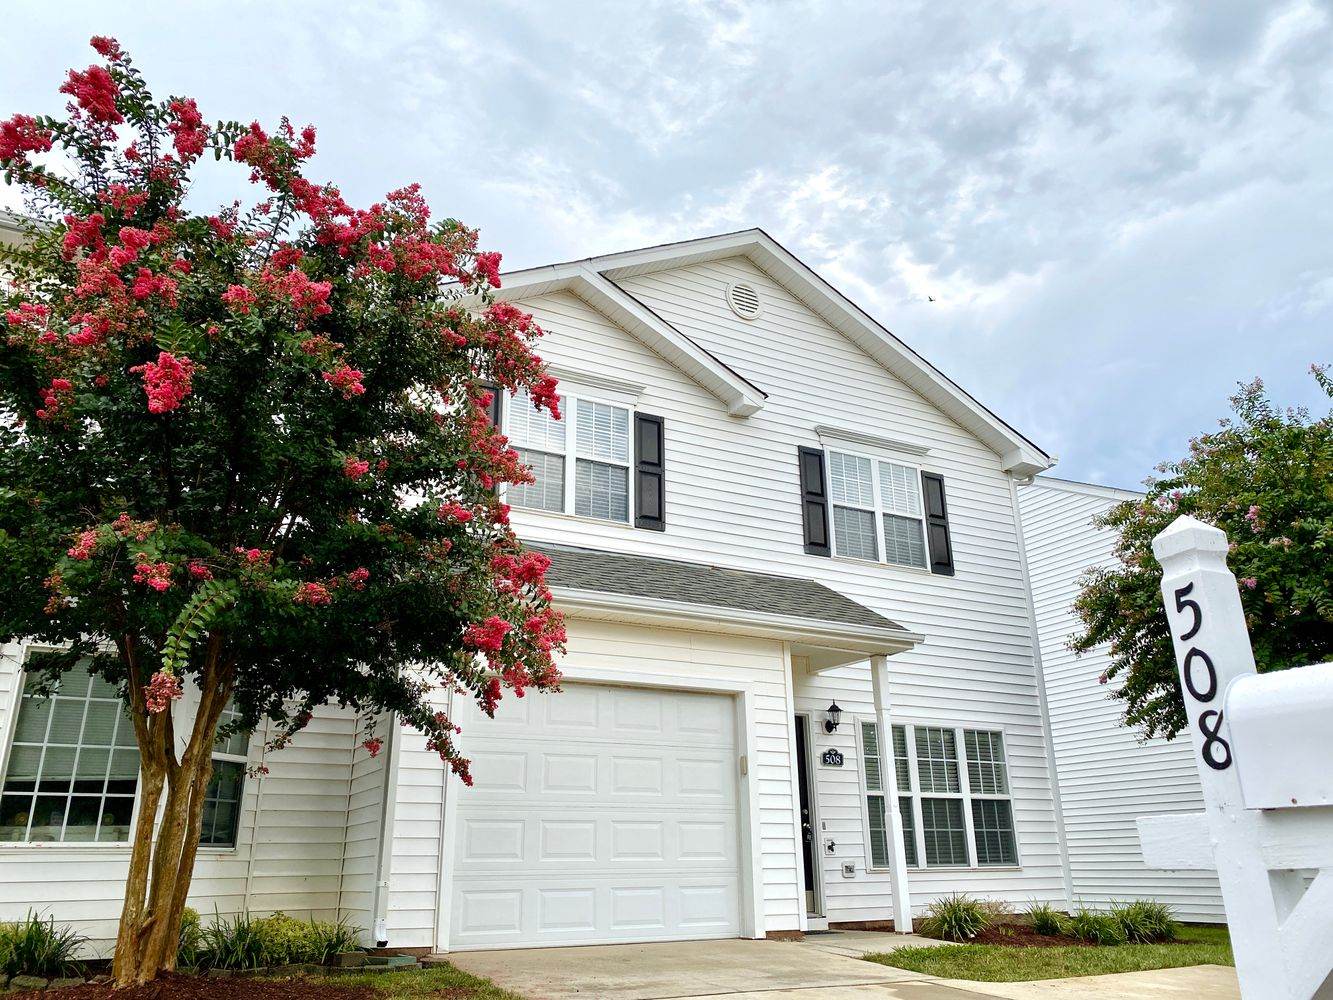 Alcove: Bedrooms for rent at 508 Misty Groves Cir, Morrisville NC 27560